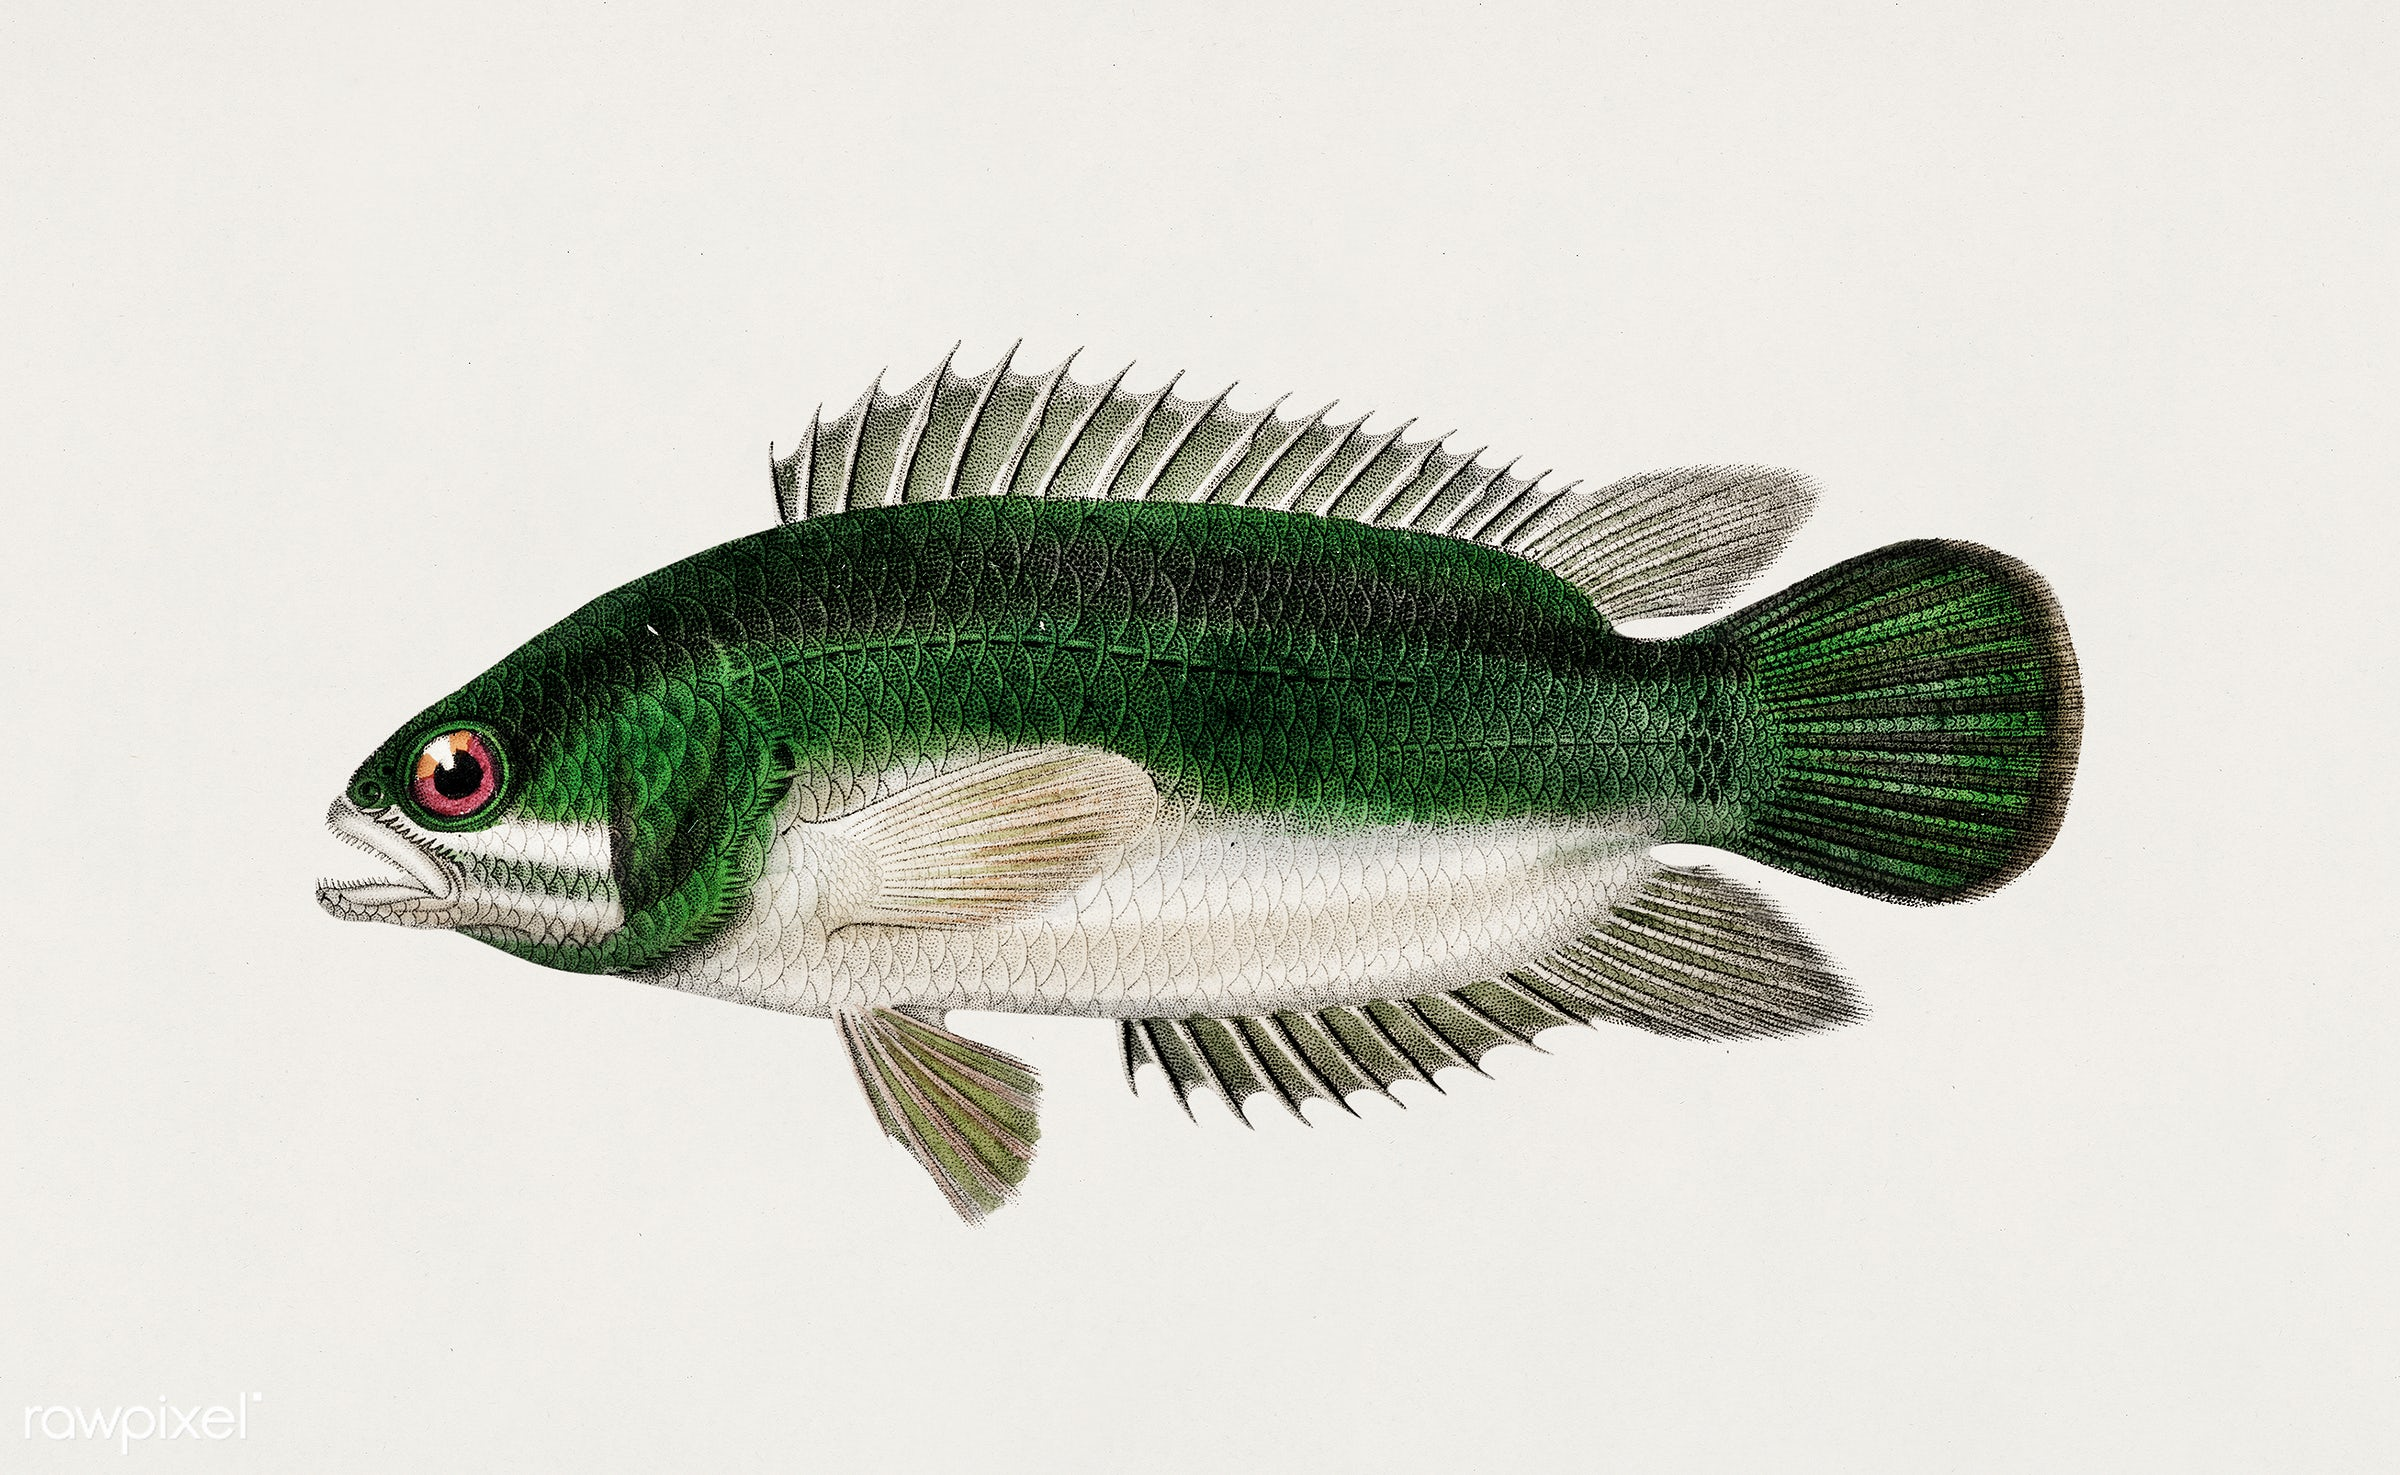 Climbing perch (Anabas testudineus) illustrated by Charles Dessalines D' Orbigny (1806-1876). Digitally enhanced from...